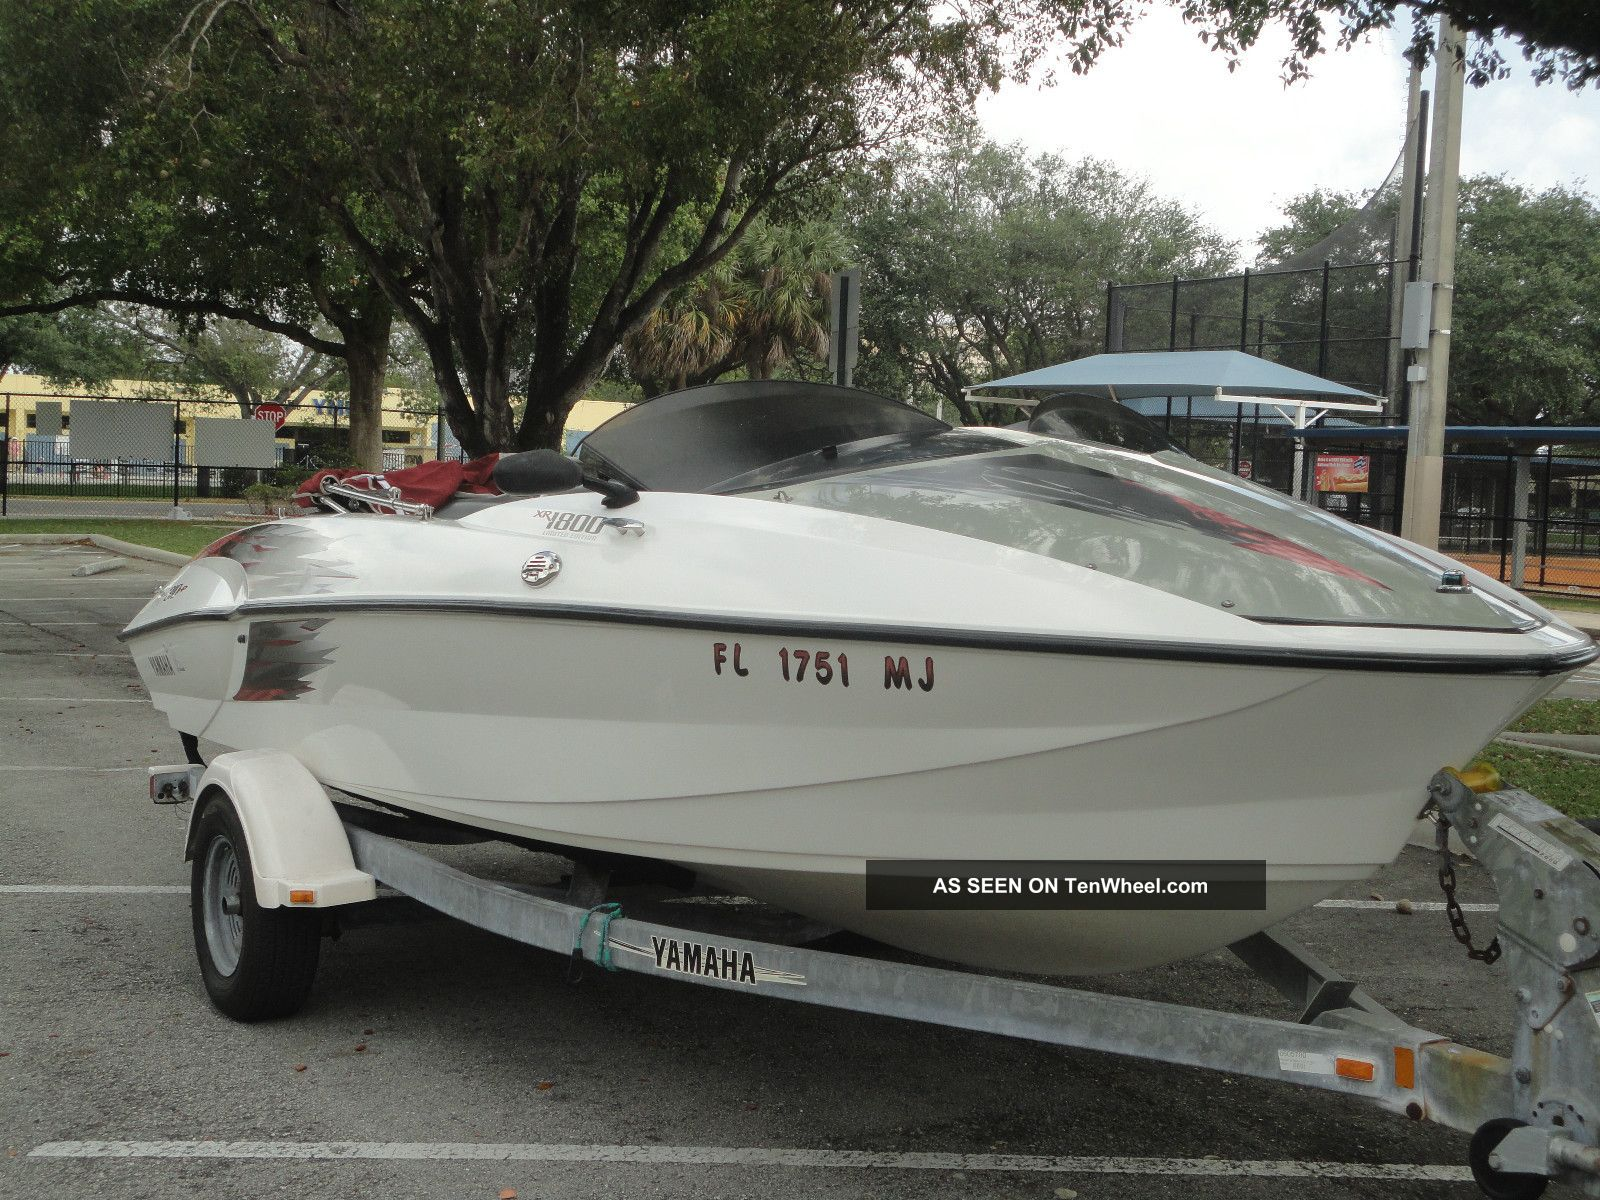 Xr1800 Yamaha Jet Boat -. Owners Manual ...